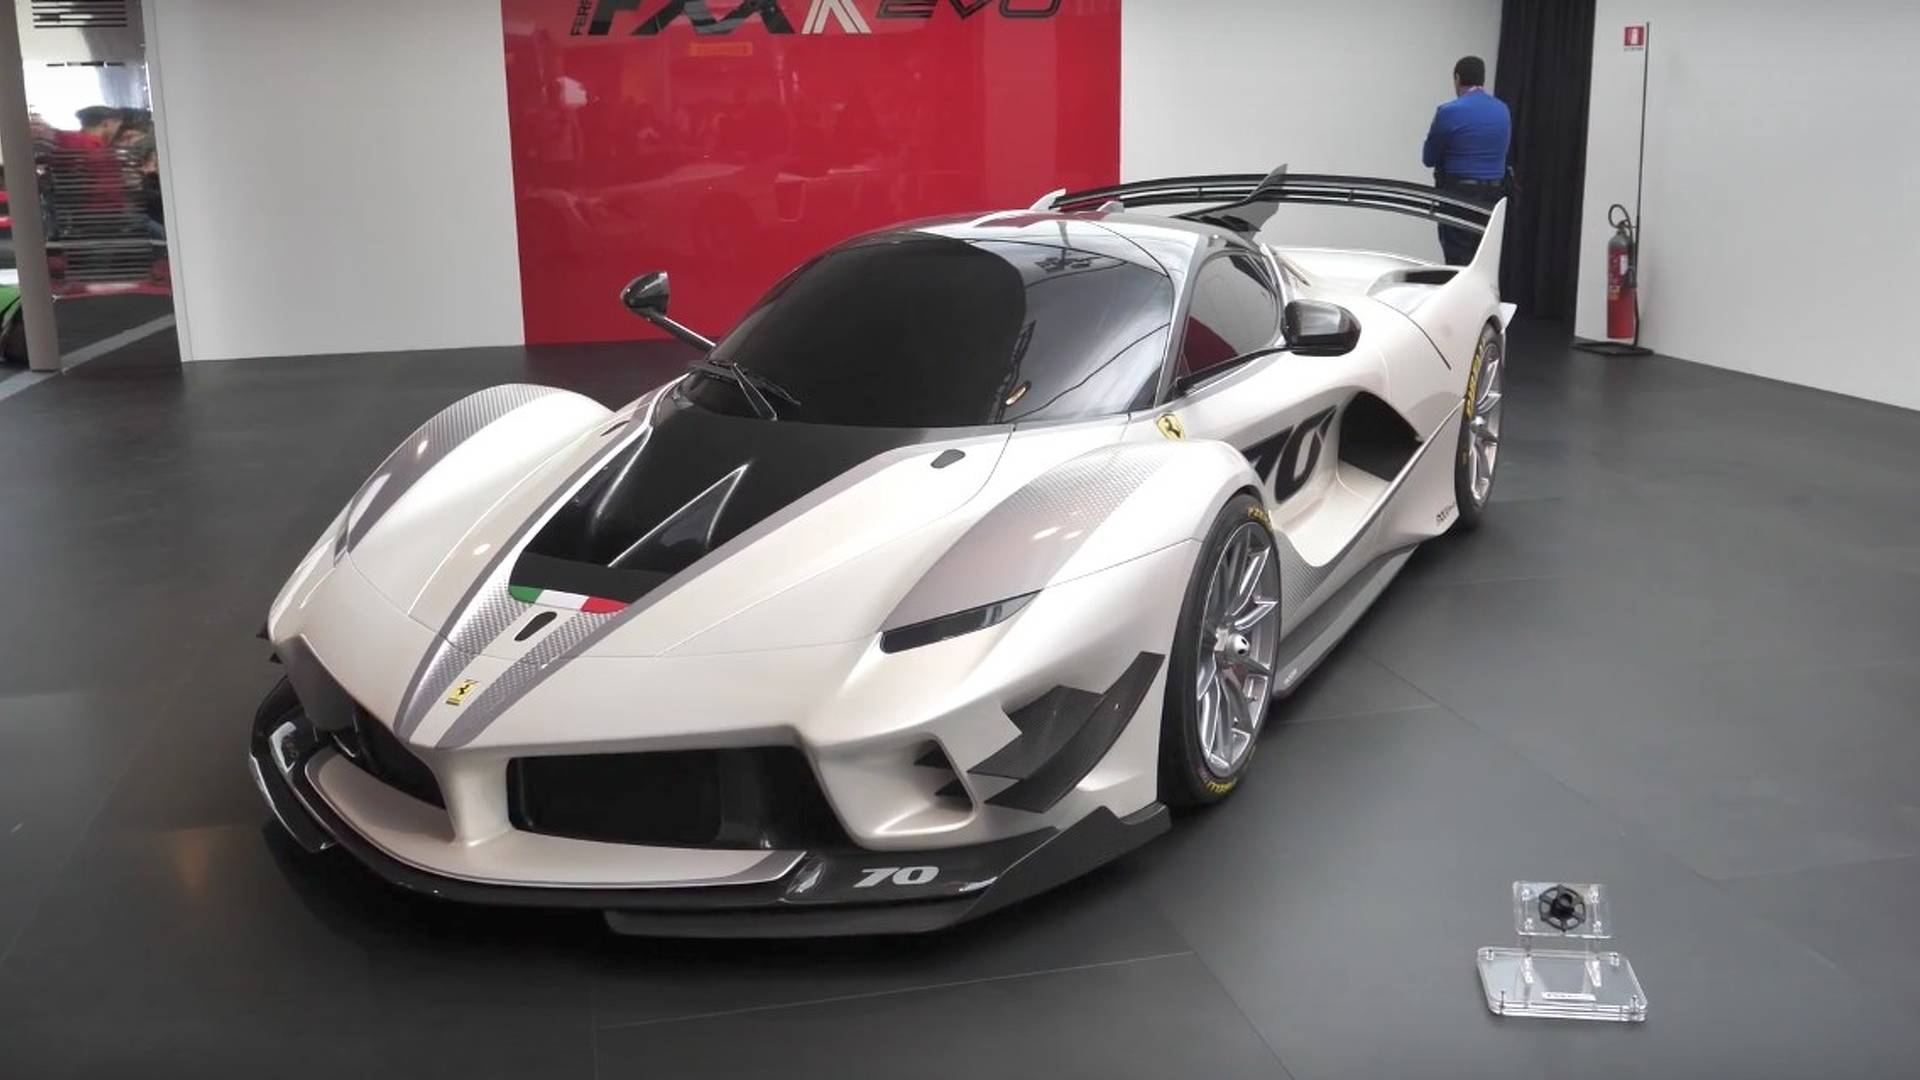 Take A Closer Look At The Attention Grabbing Ferrari Fxx K Evo